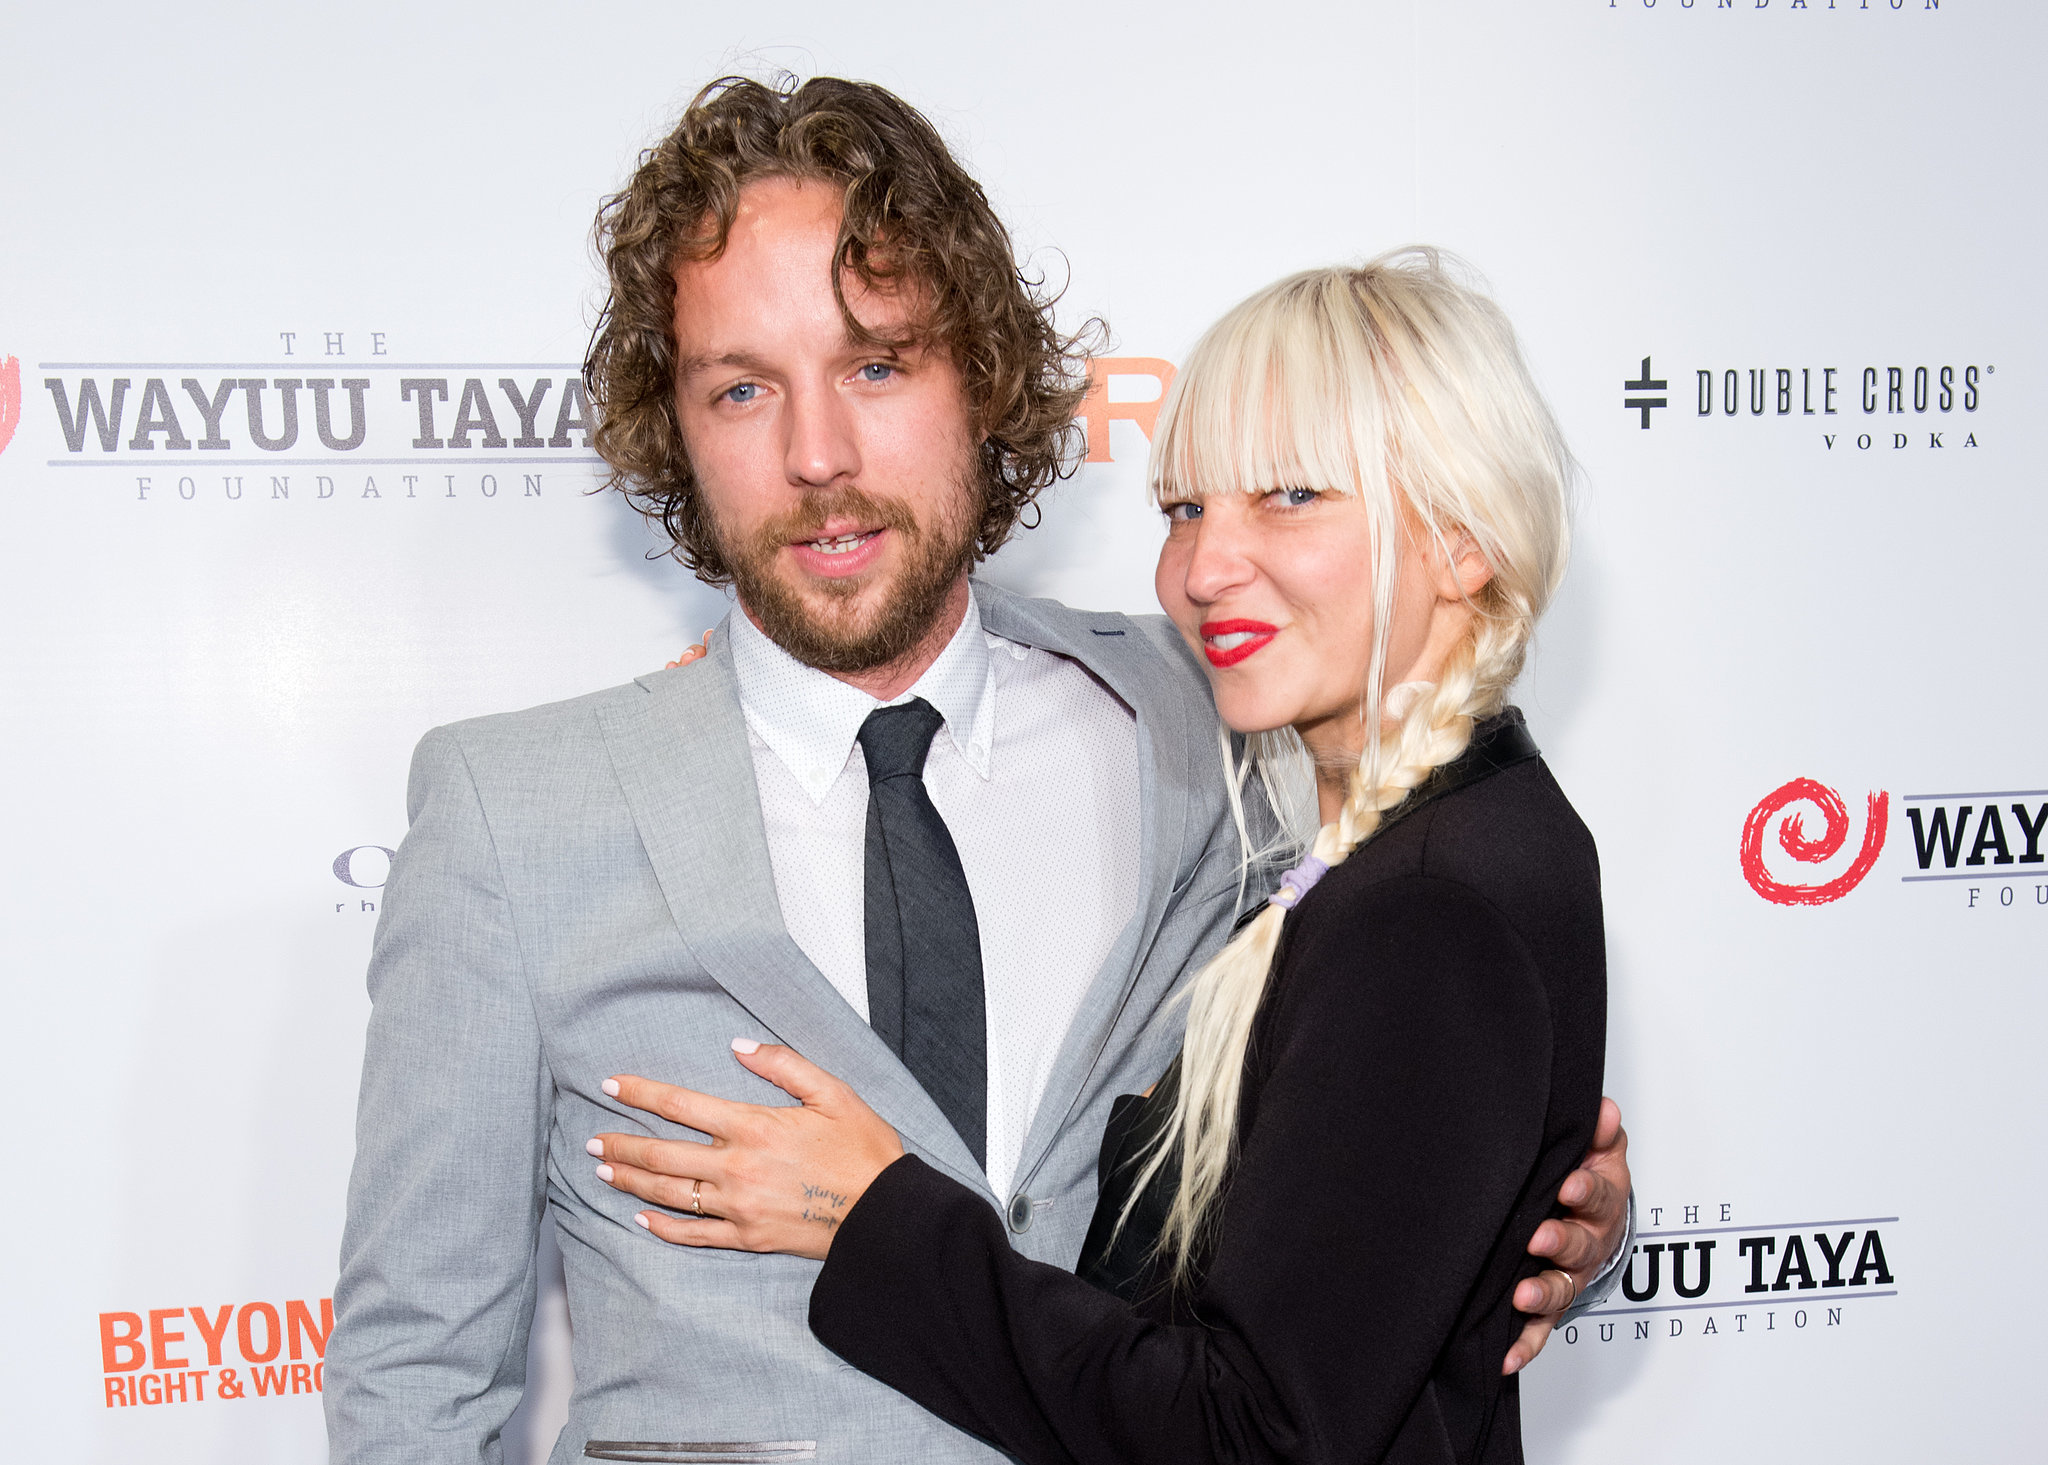 Sia wore her engagement ring to the 2014 Wayuu Taya Gala in NYC in June. She lit up on the red carpet next to her handsome fiancé.